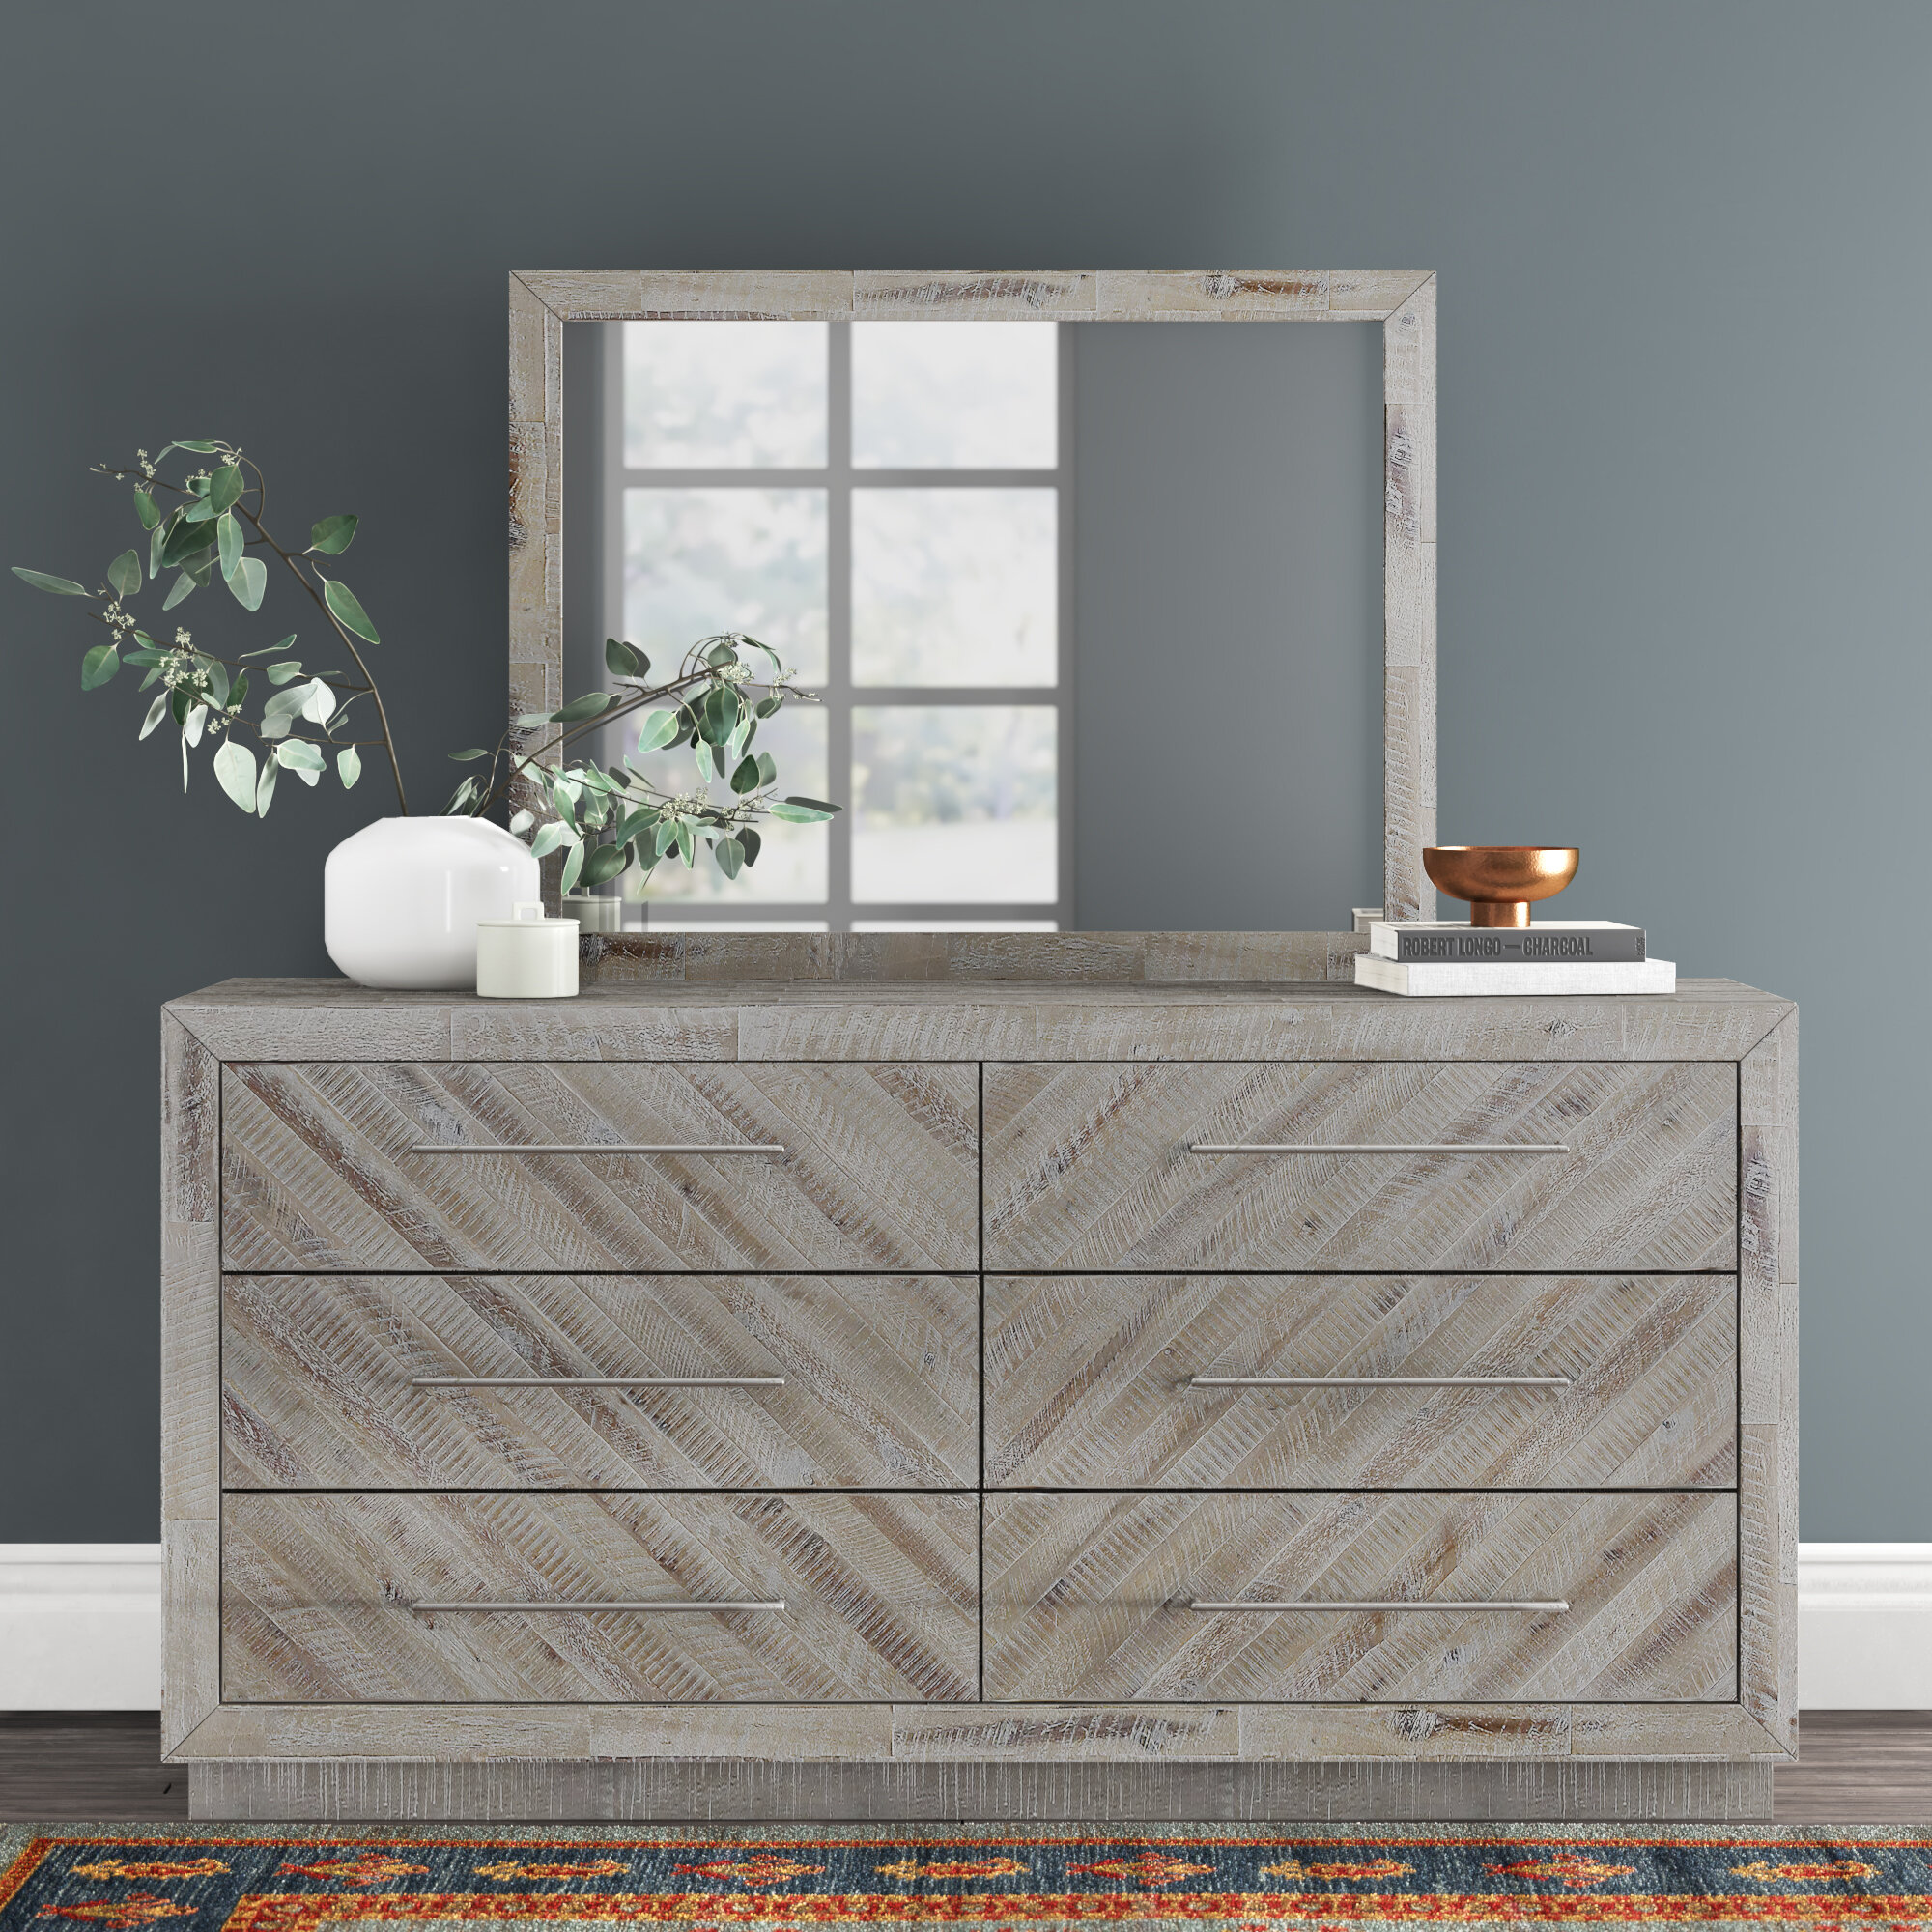 6 Drawer Double Dresser With Mirror Reviews Joss Main